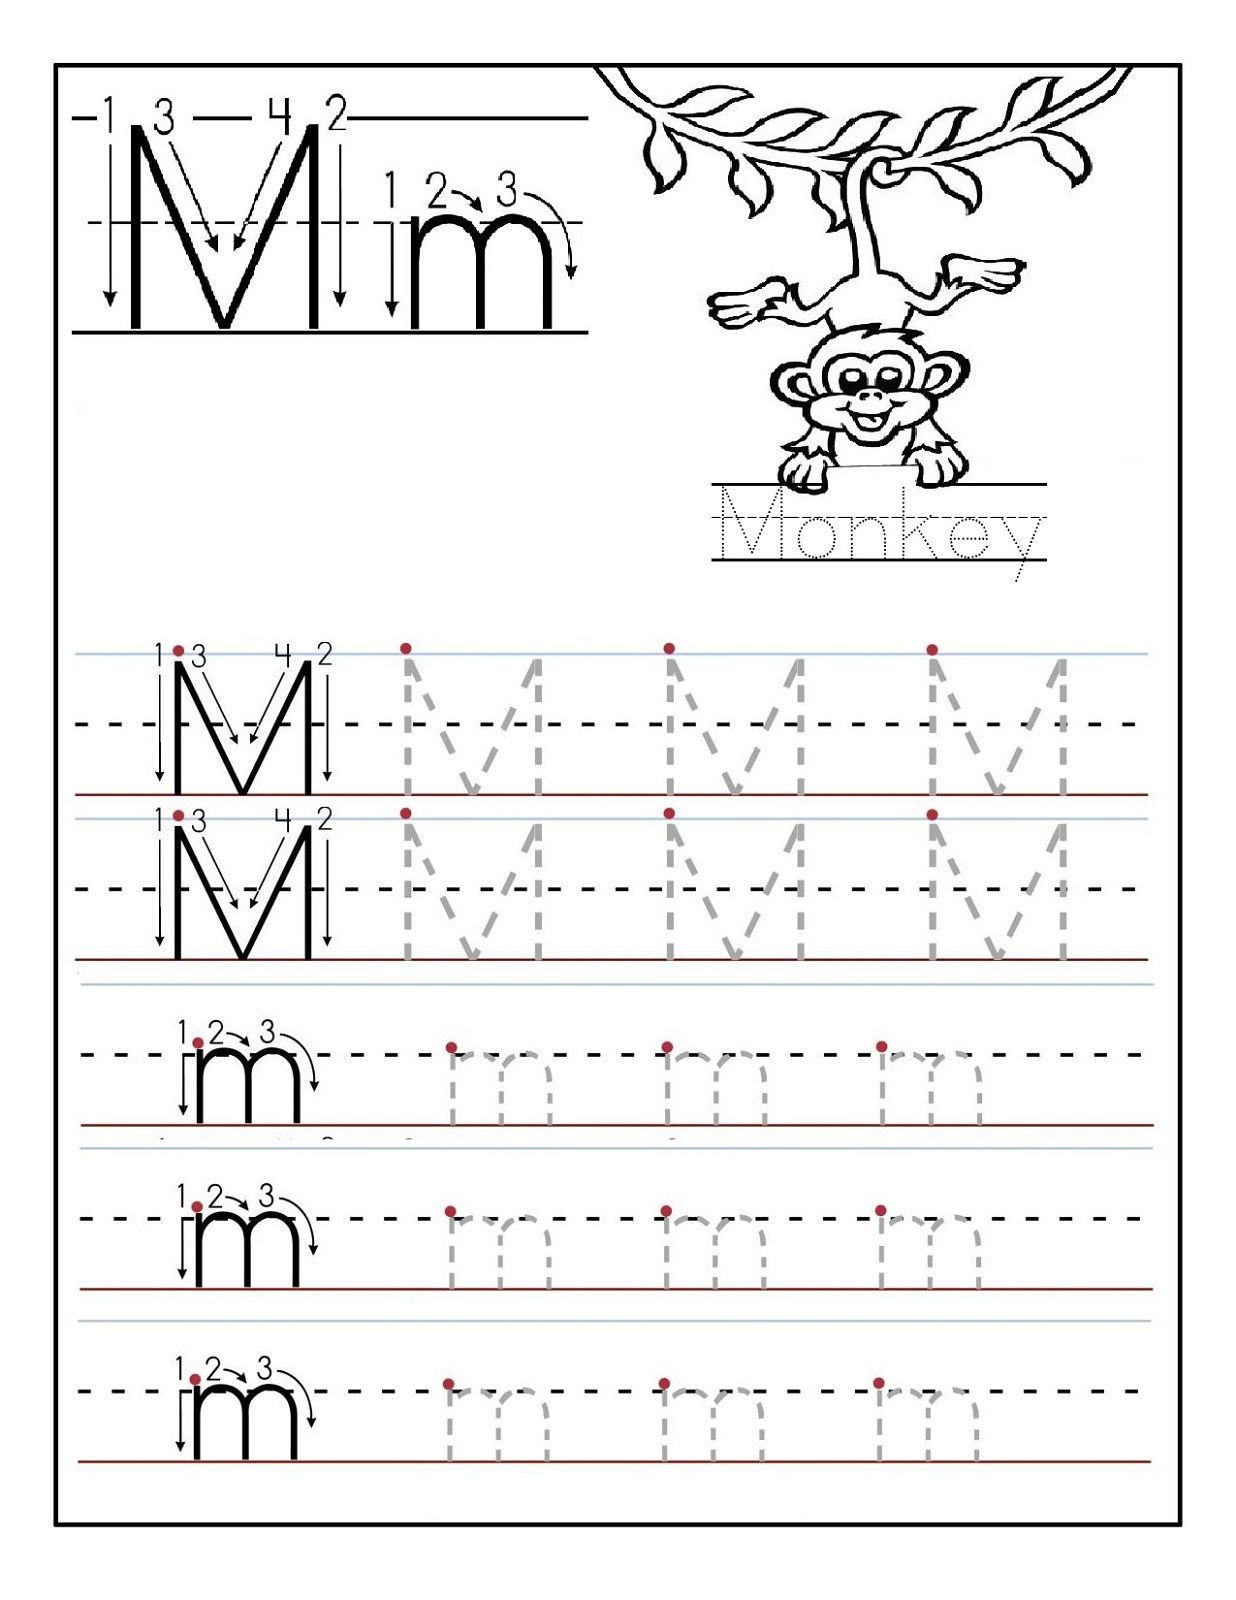 Letter N Tracing Worksheets Preschool 2 Preschool Letter N Tracing Worksheets In 2020